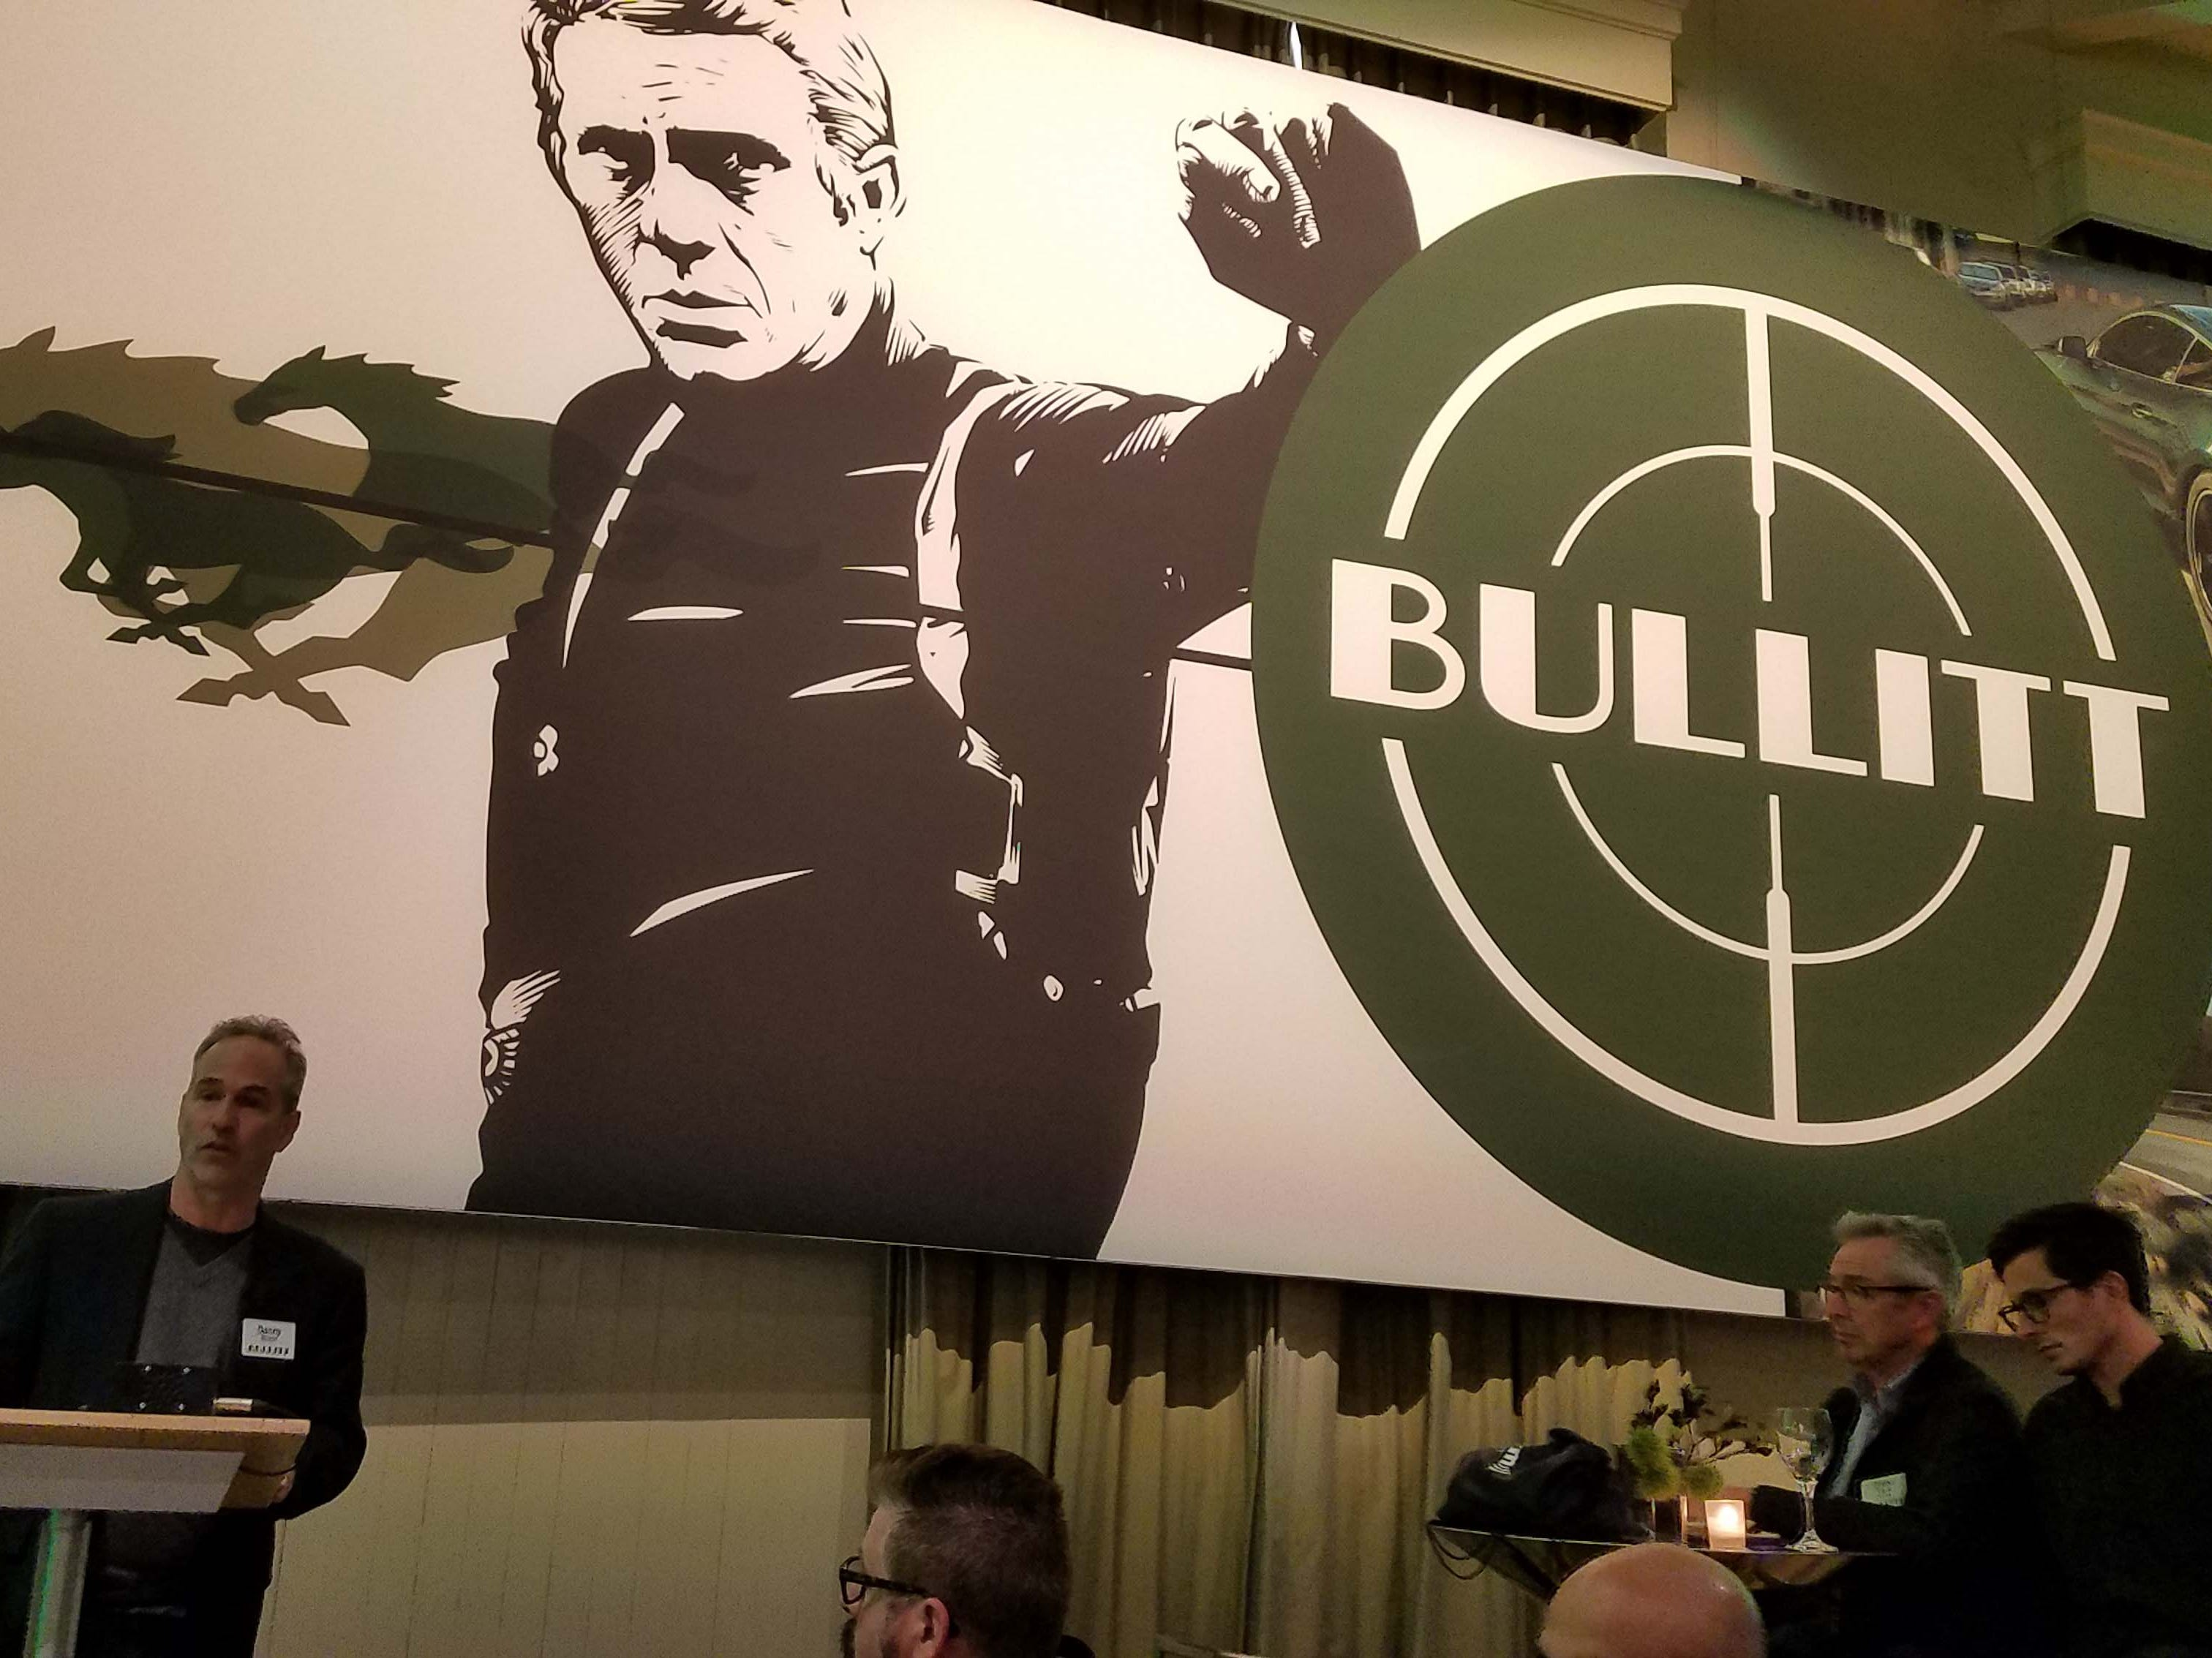 """USC professor of Cinematic Arts Danny Bilson is an expert on the """"Bullitt"""" movie. The 2019 Ford Mustang Bullitt uses graphics from the original movie poster."""